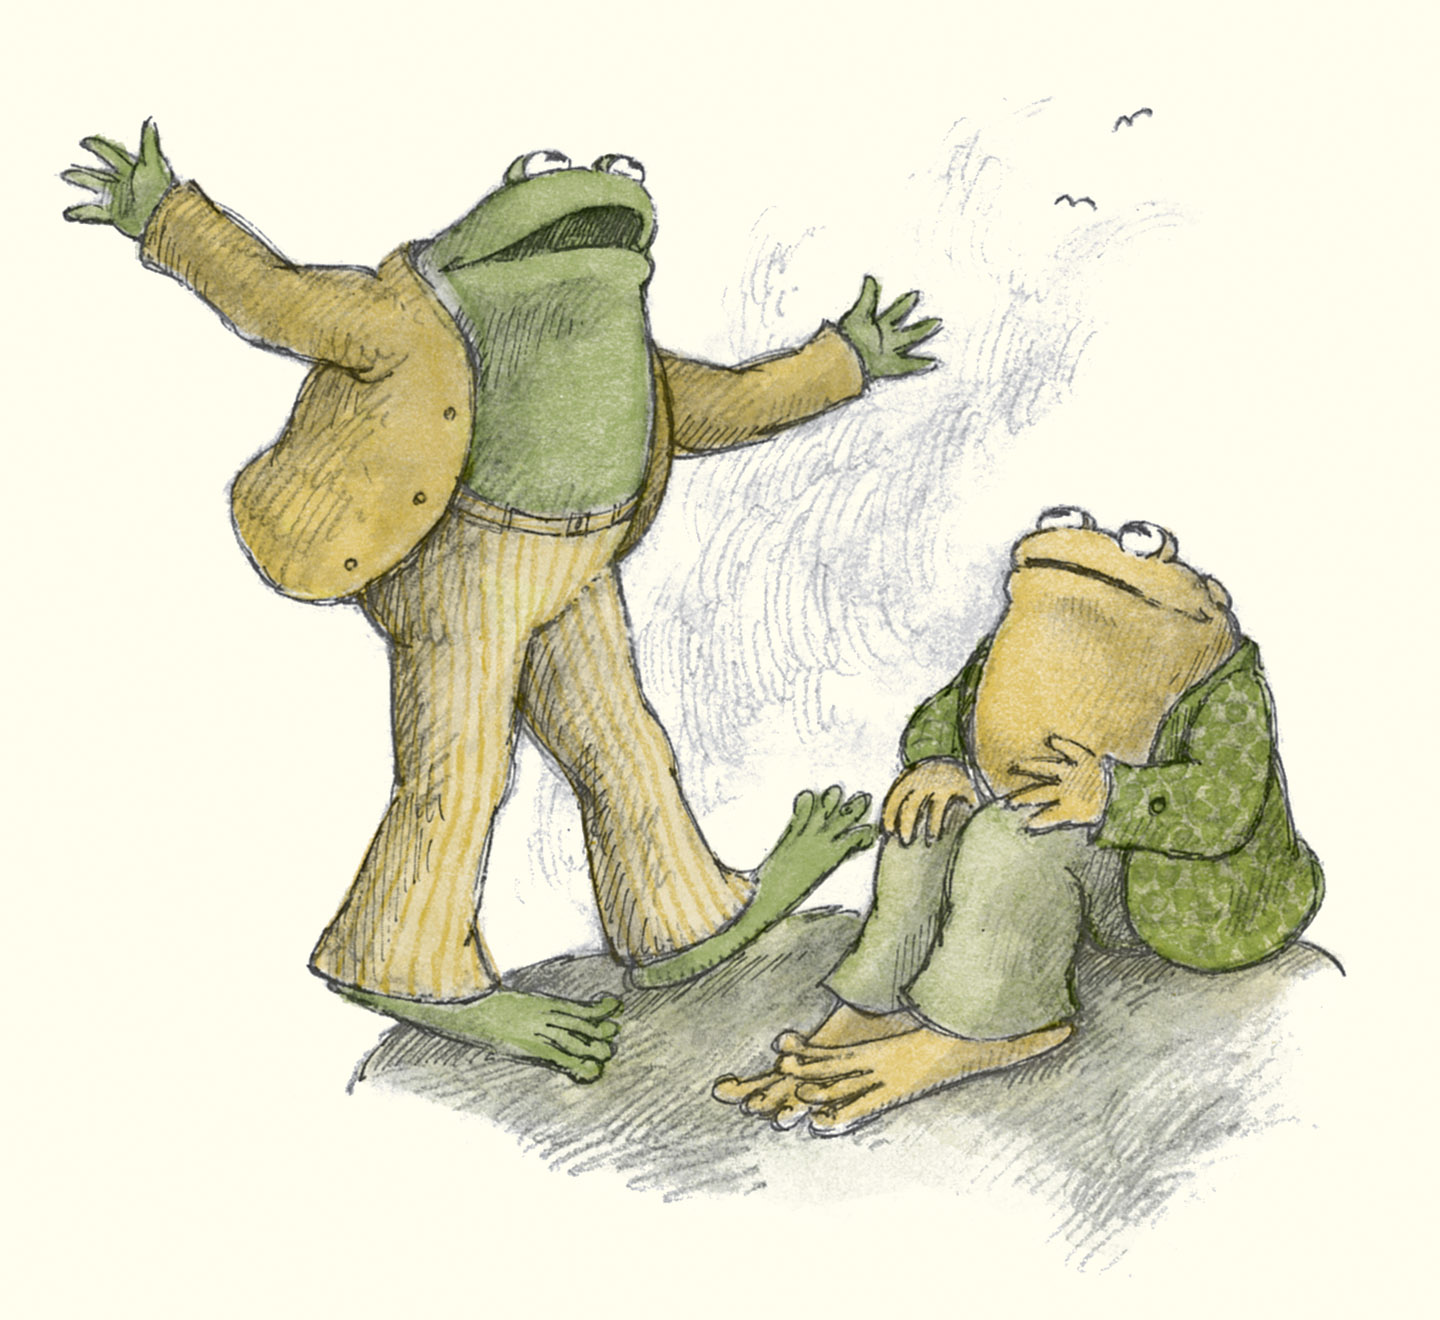 Tomt Children S Book About The Adventure Of A Frog Or